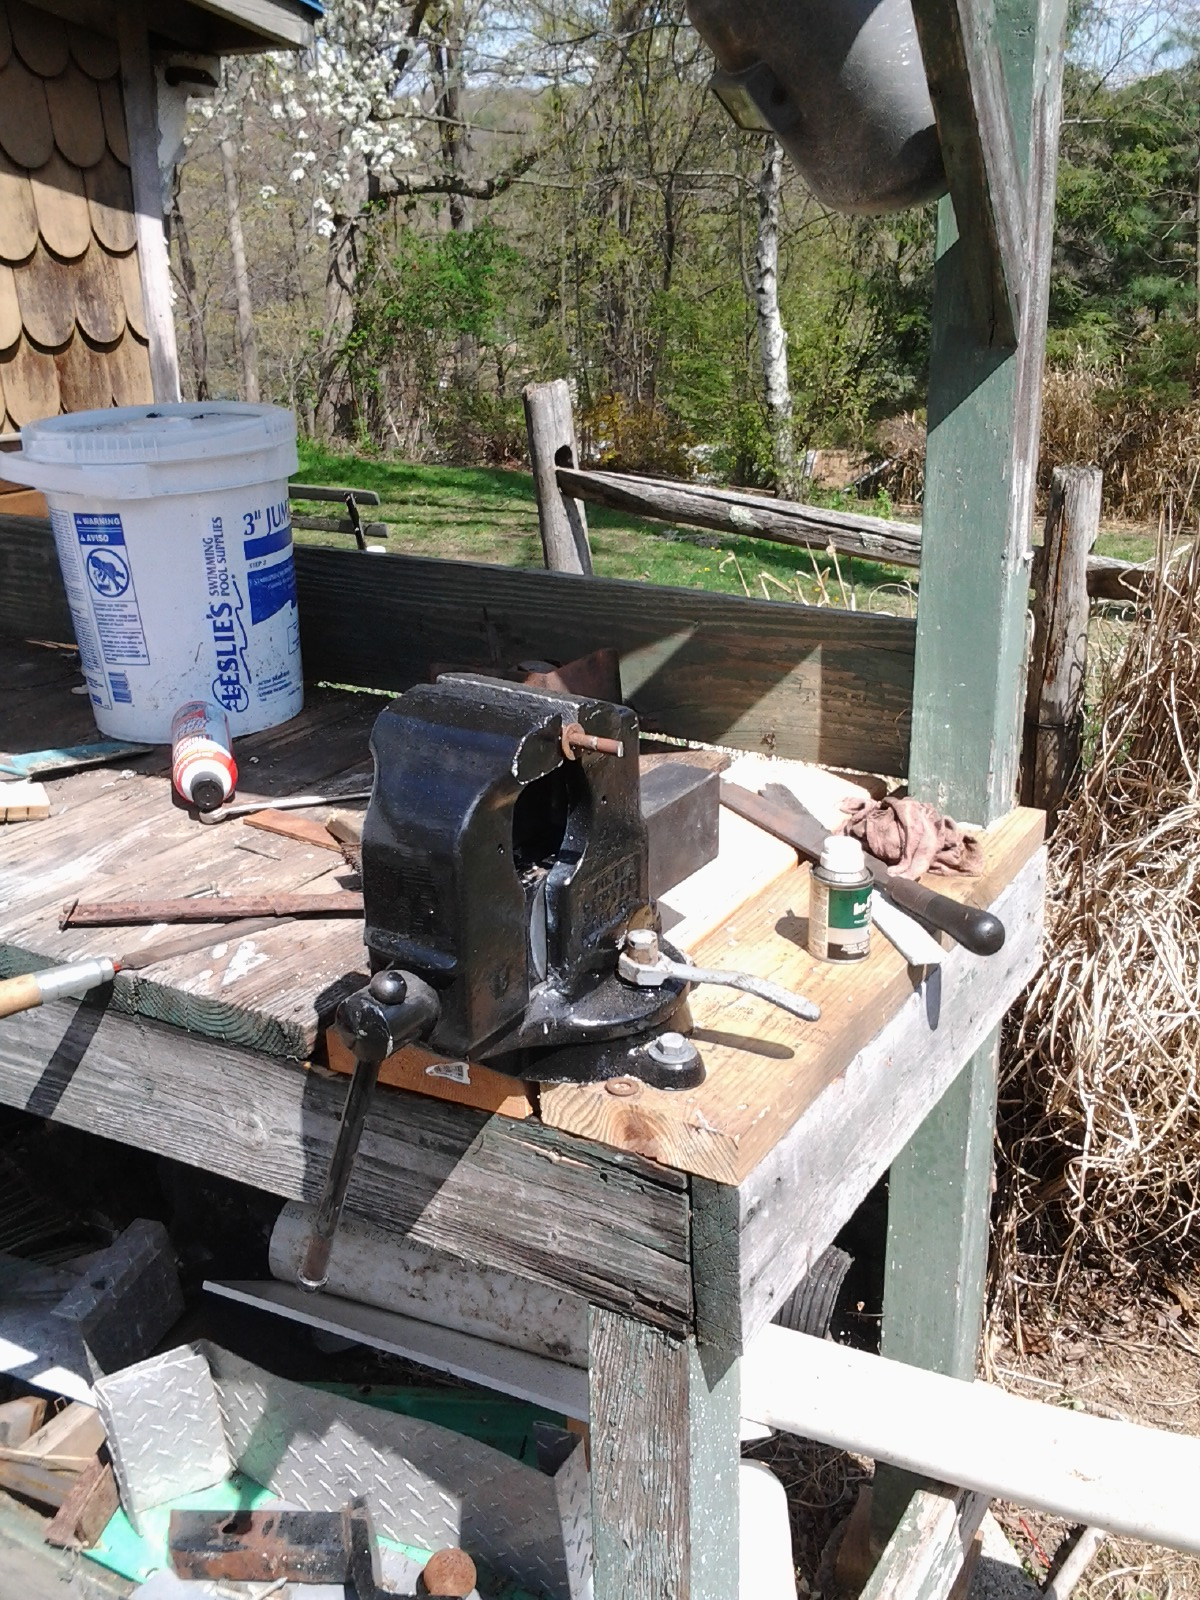 Looking for a vise...-0503151424a.jpg